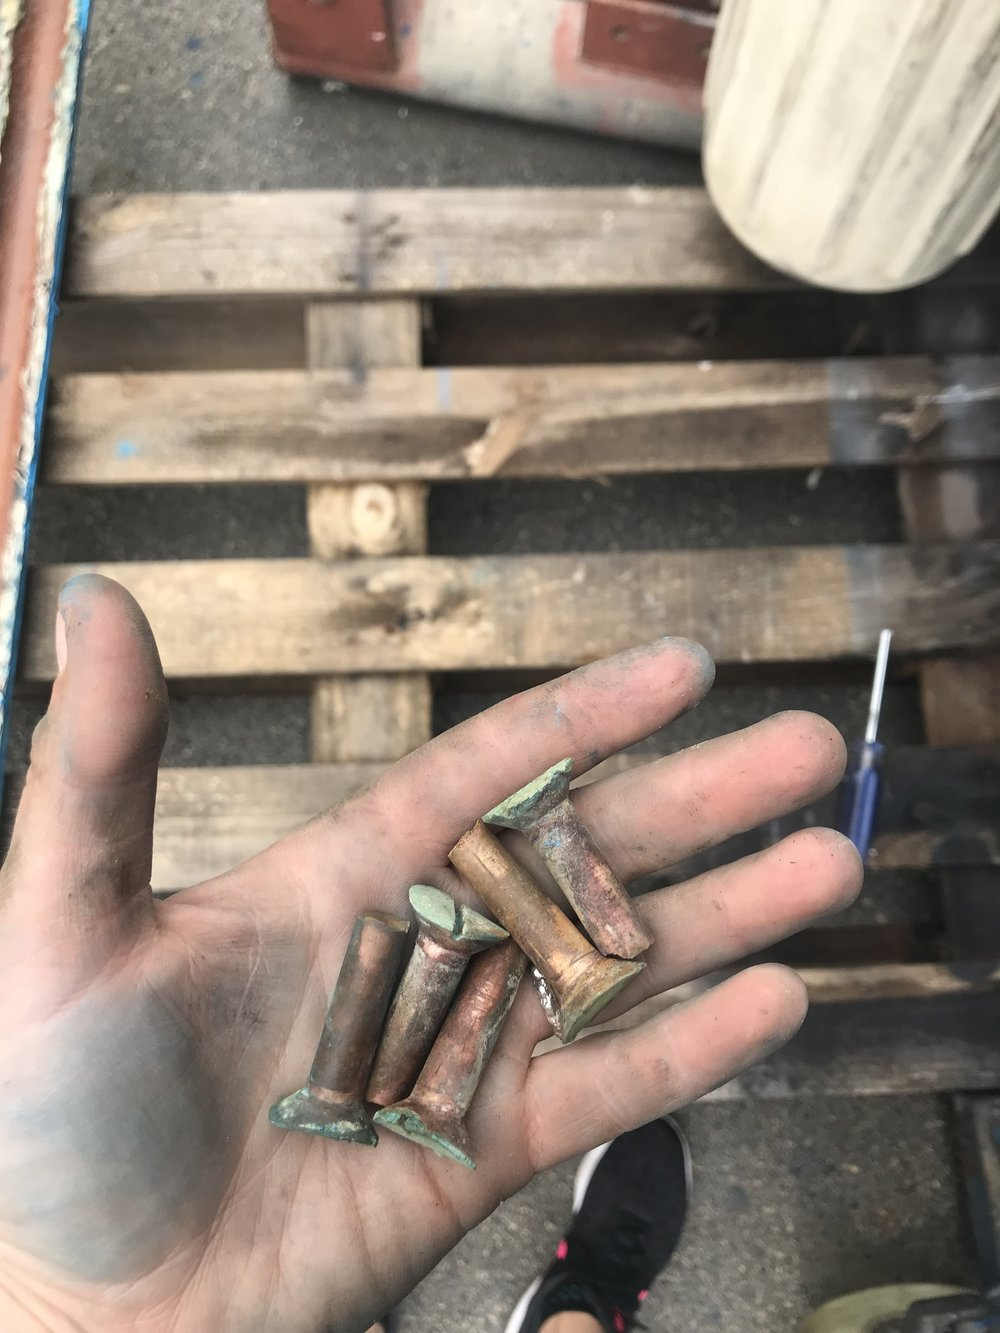 sheared rudder bolts